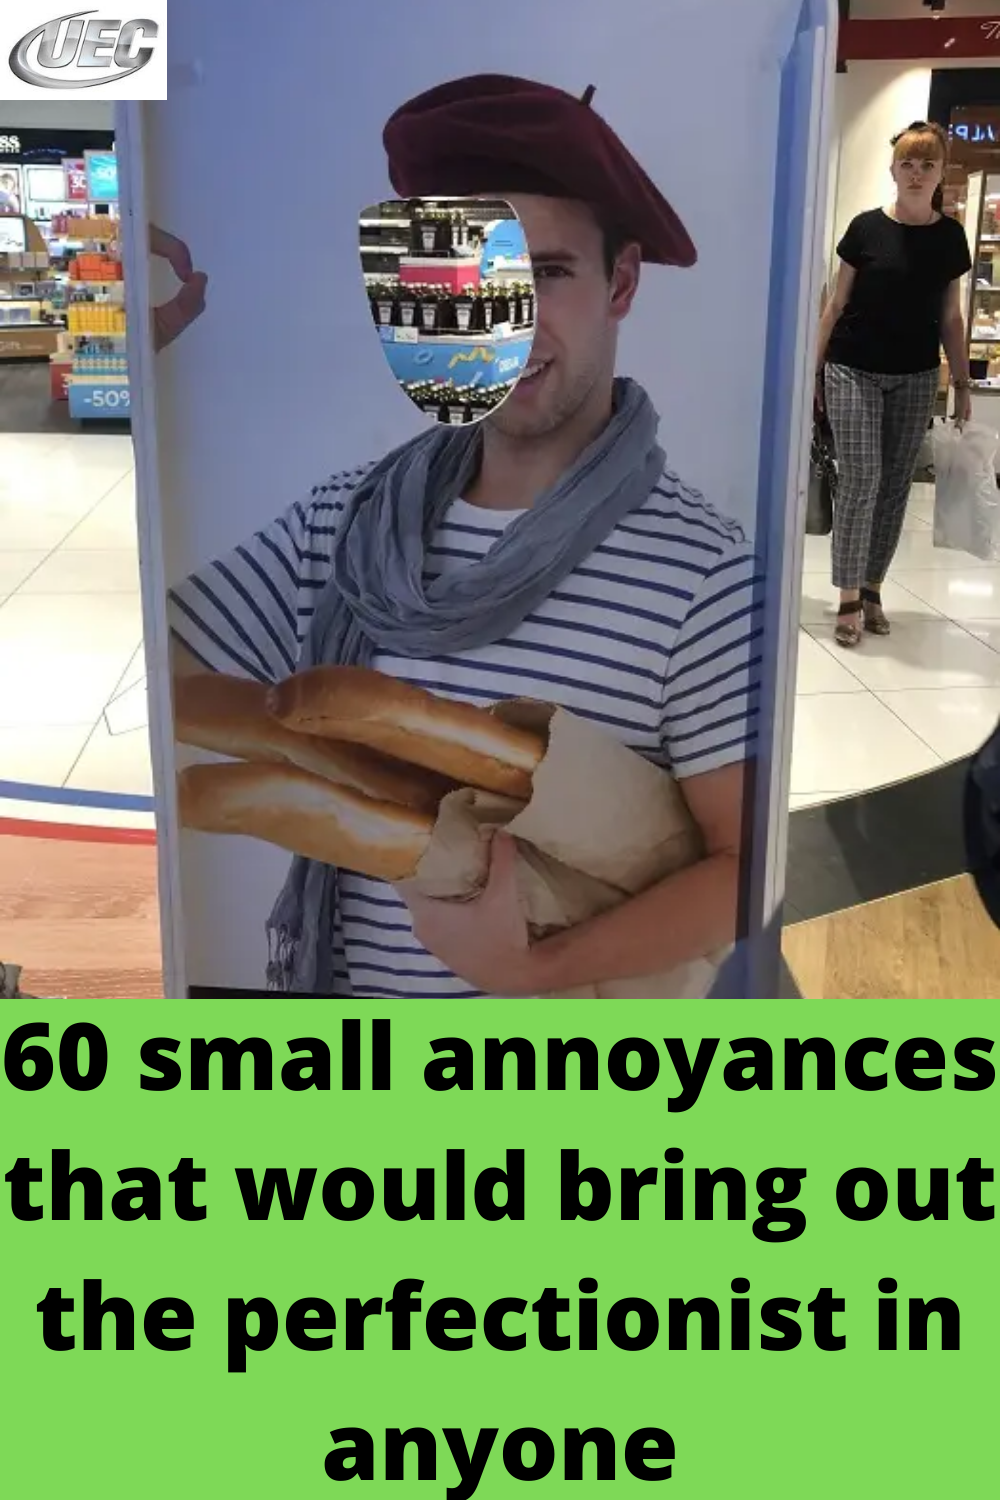 60 small annoyances that would bring out the perfectionist in anyone